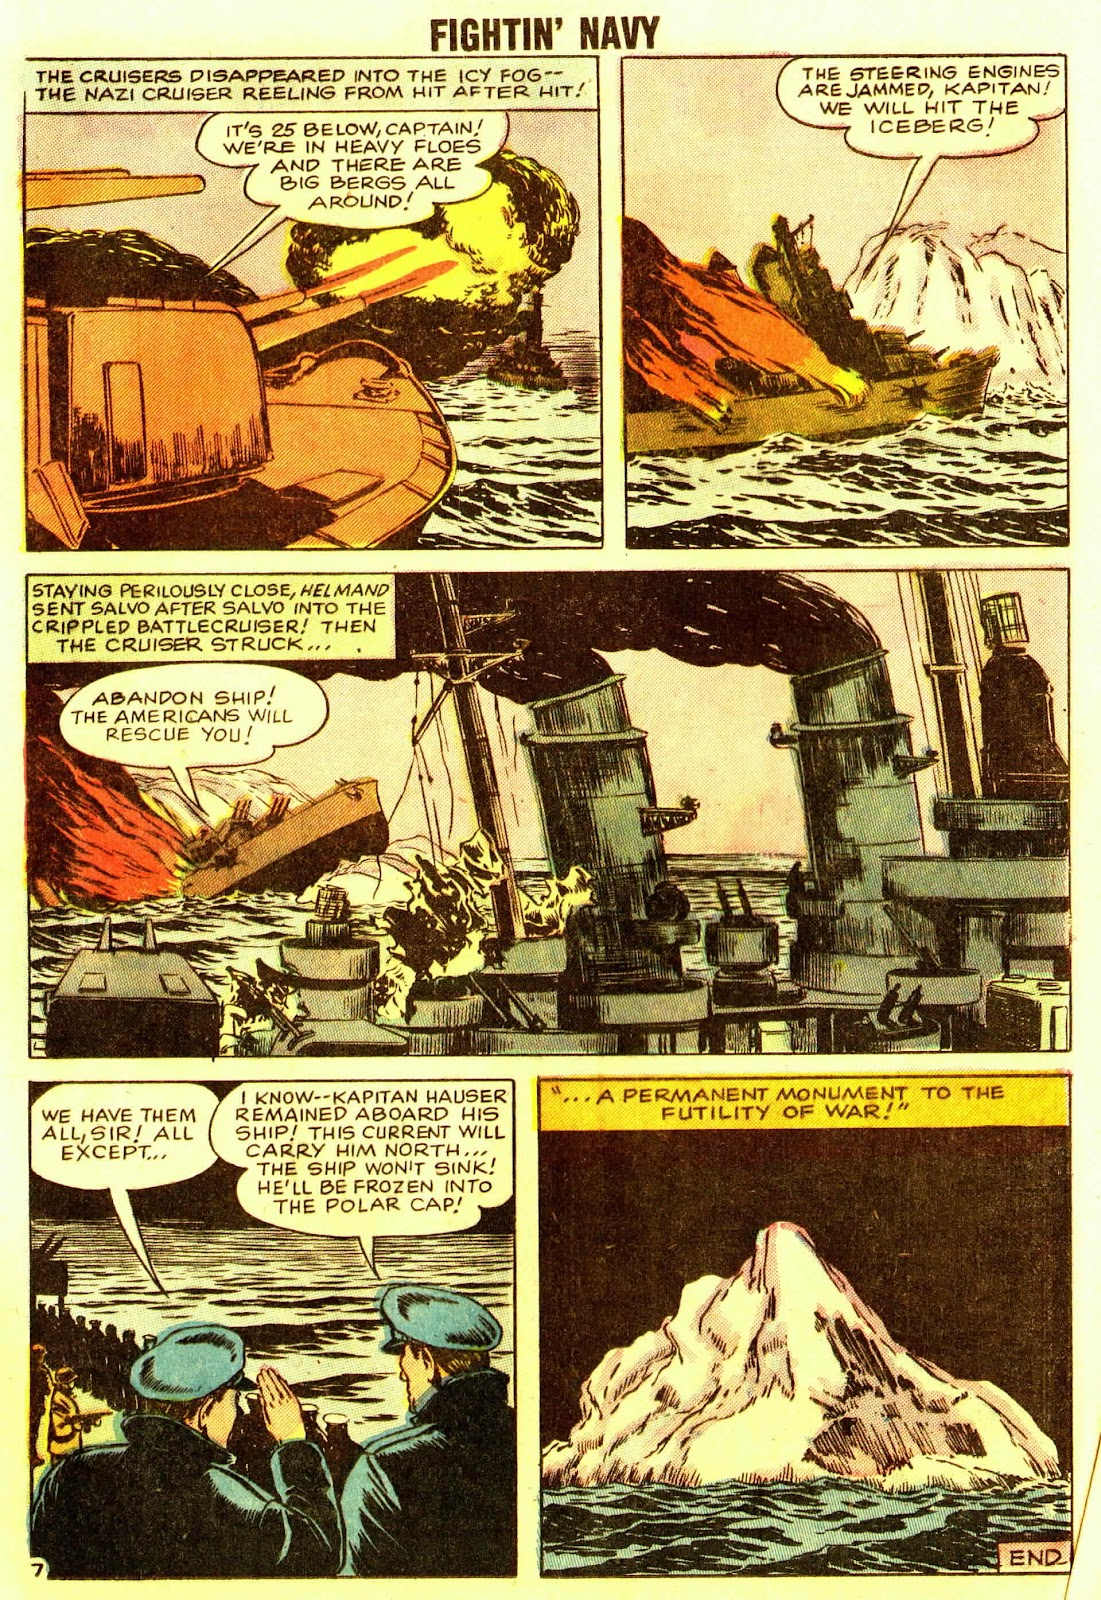 Read online Fightin' Navy comic -  Issue #83 - 81